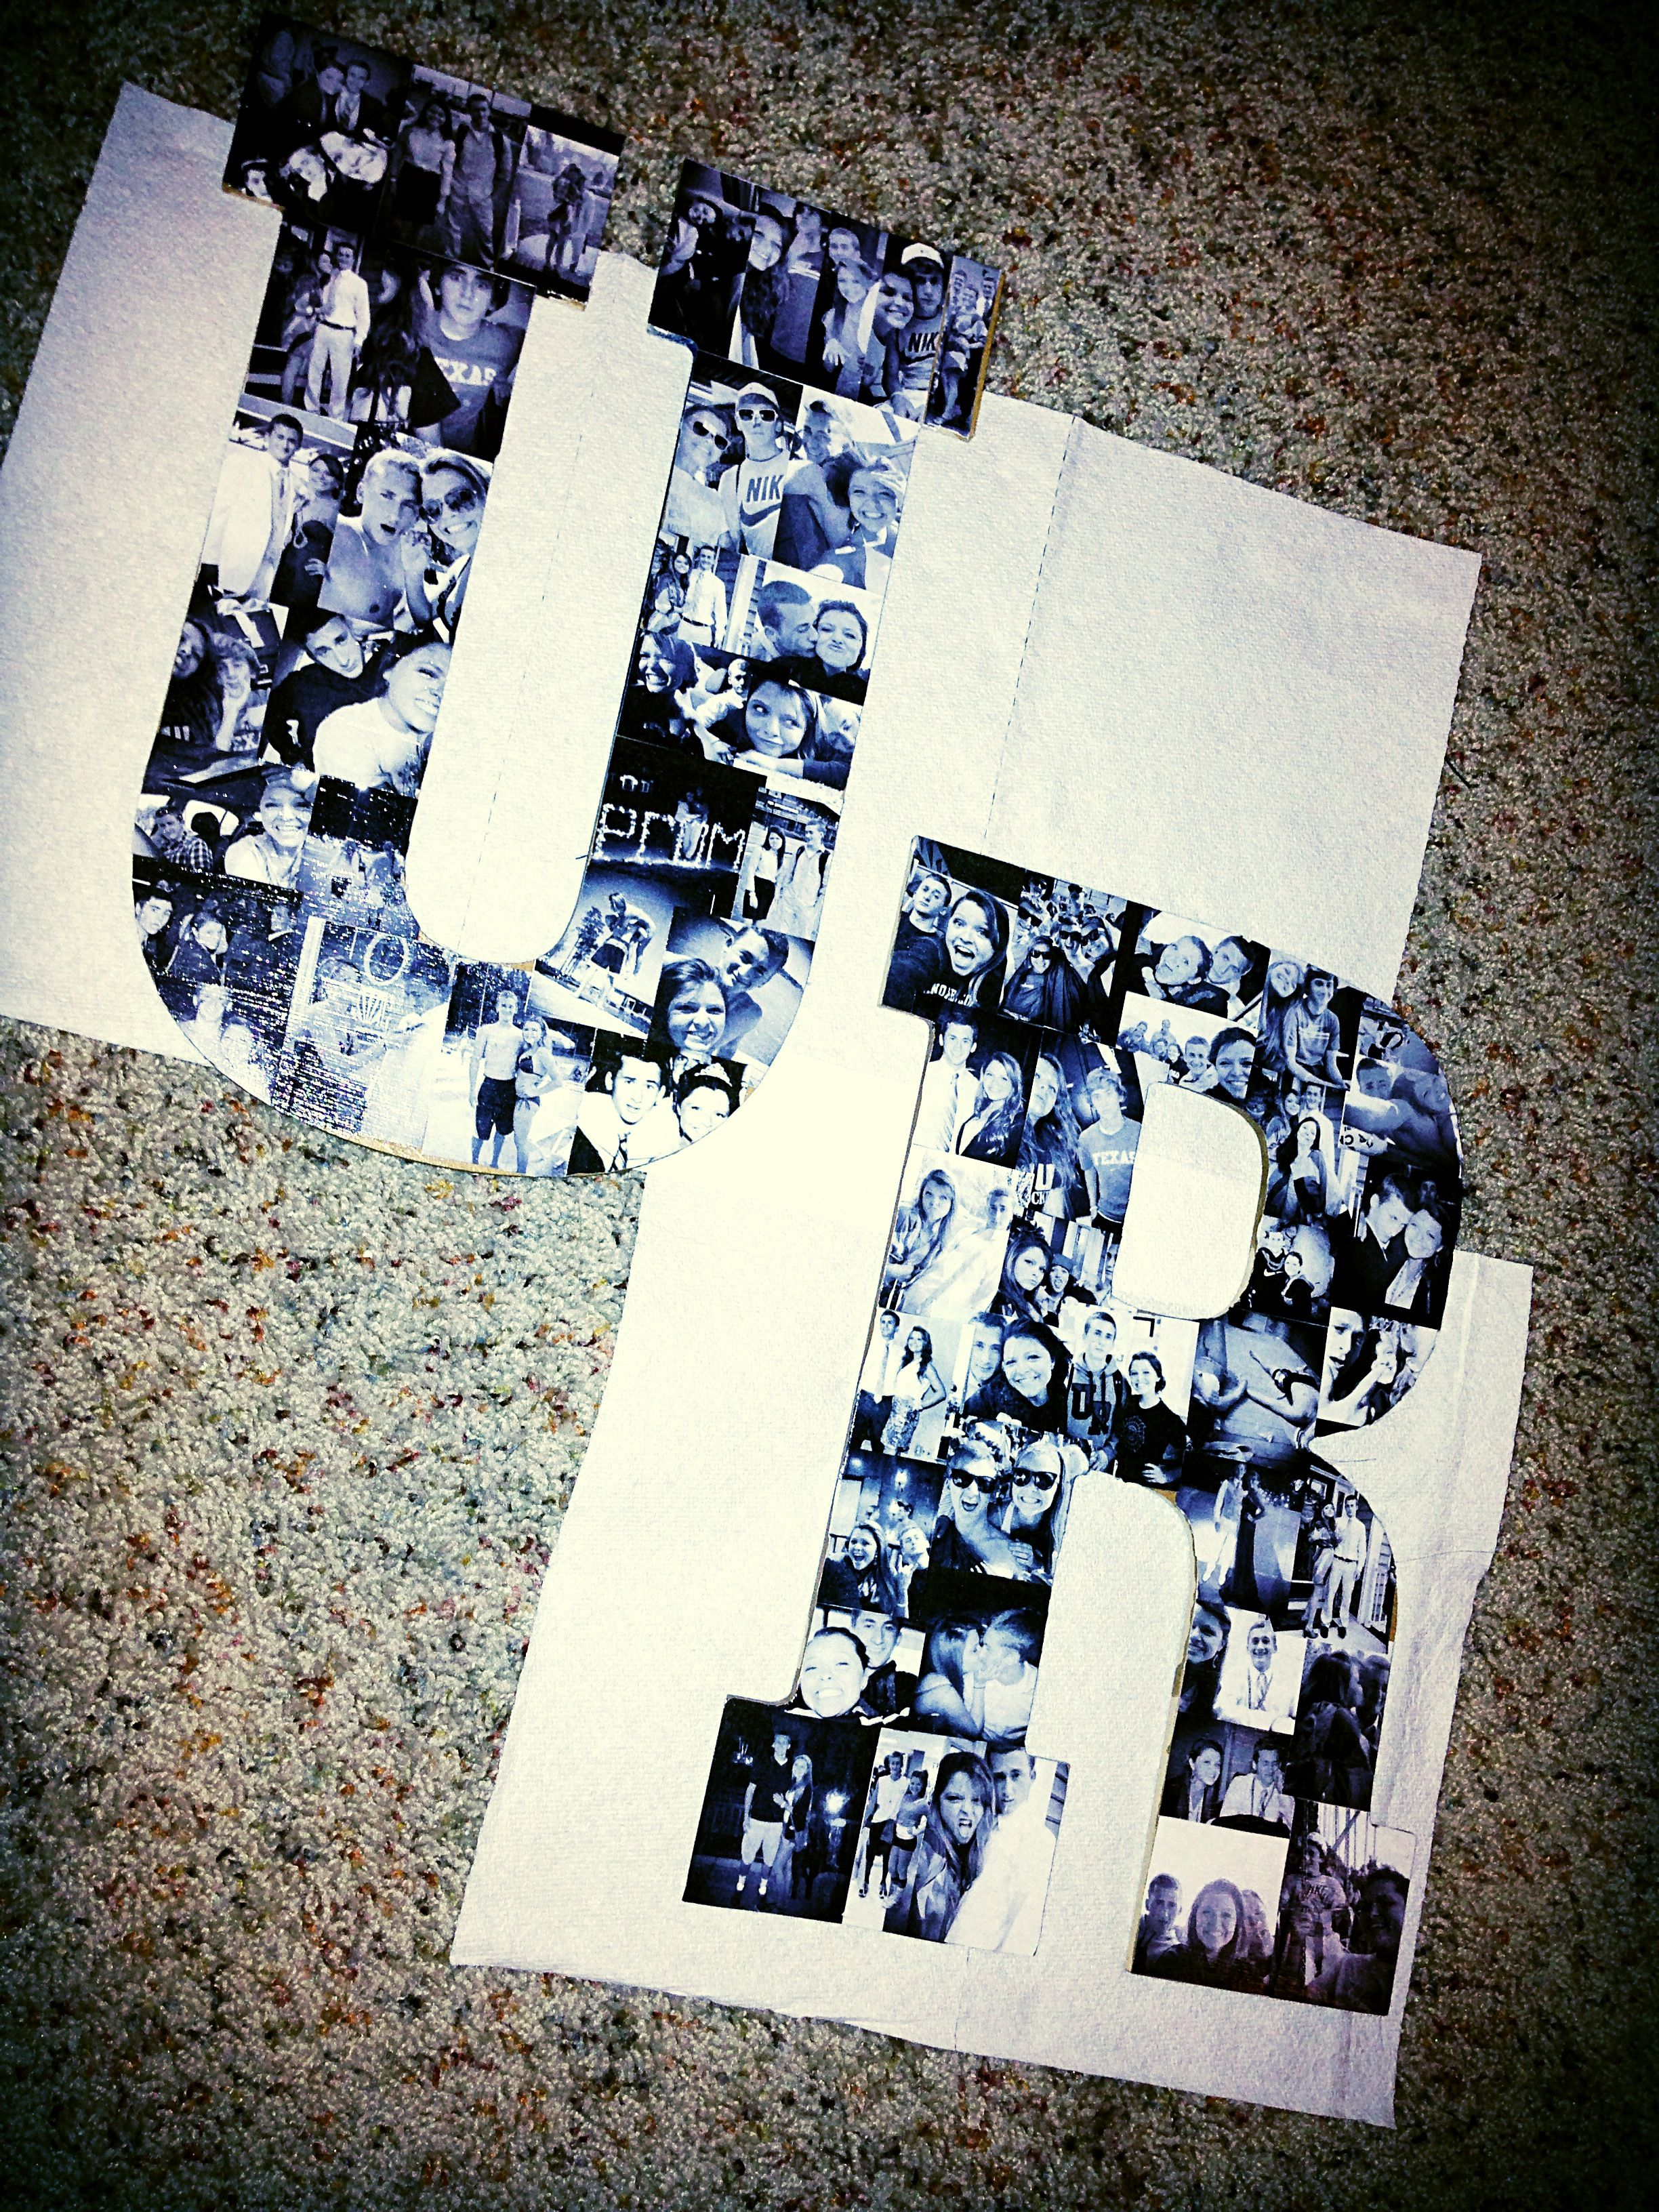 Mod podge pictures on wood letters UR for University of Richmond